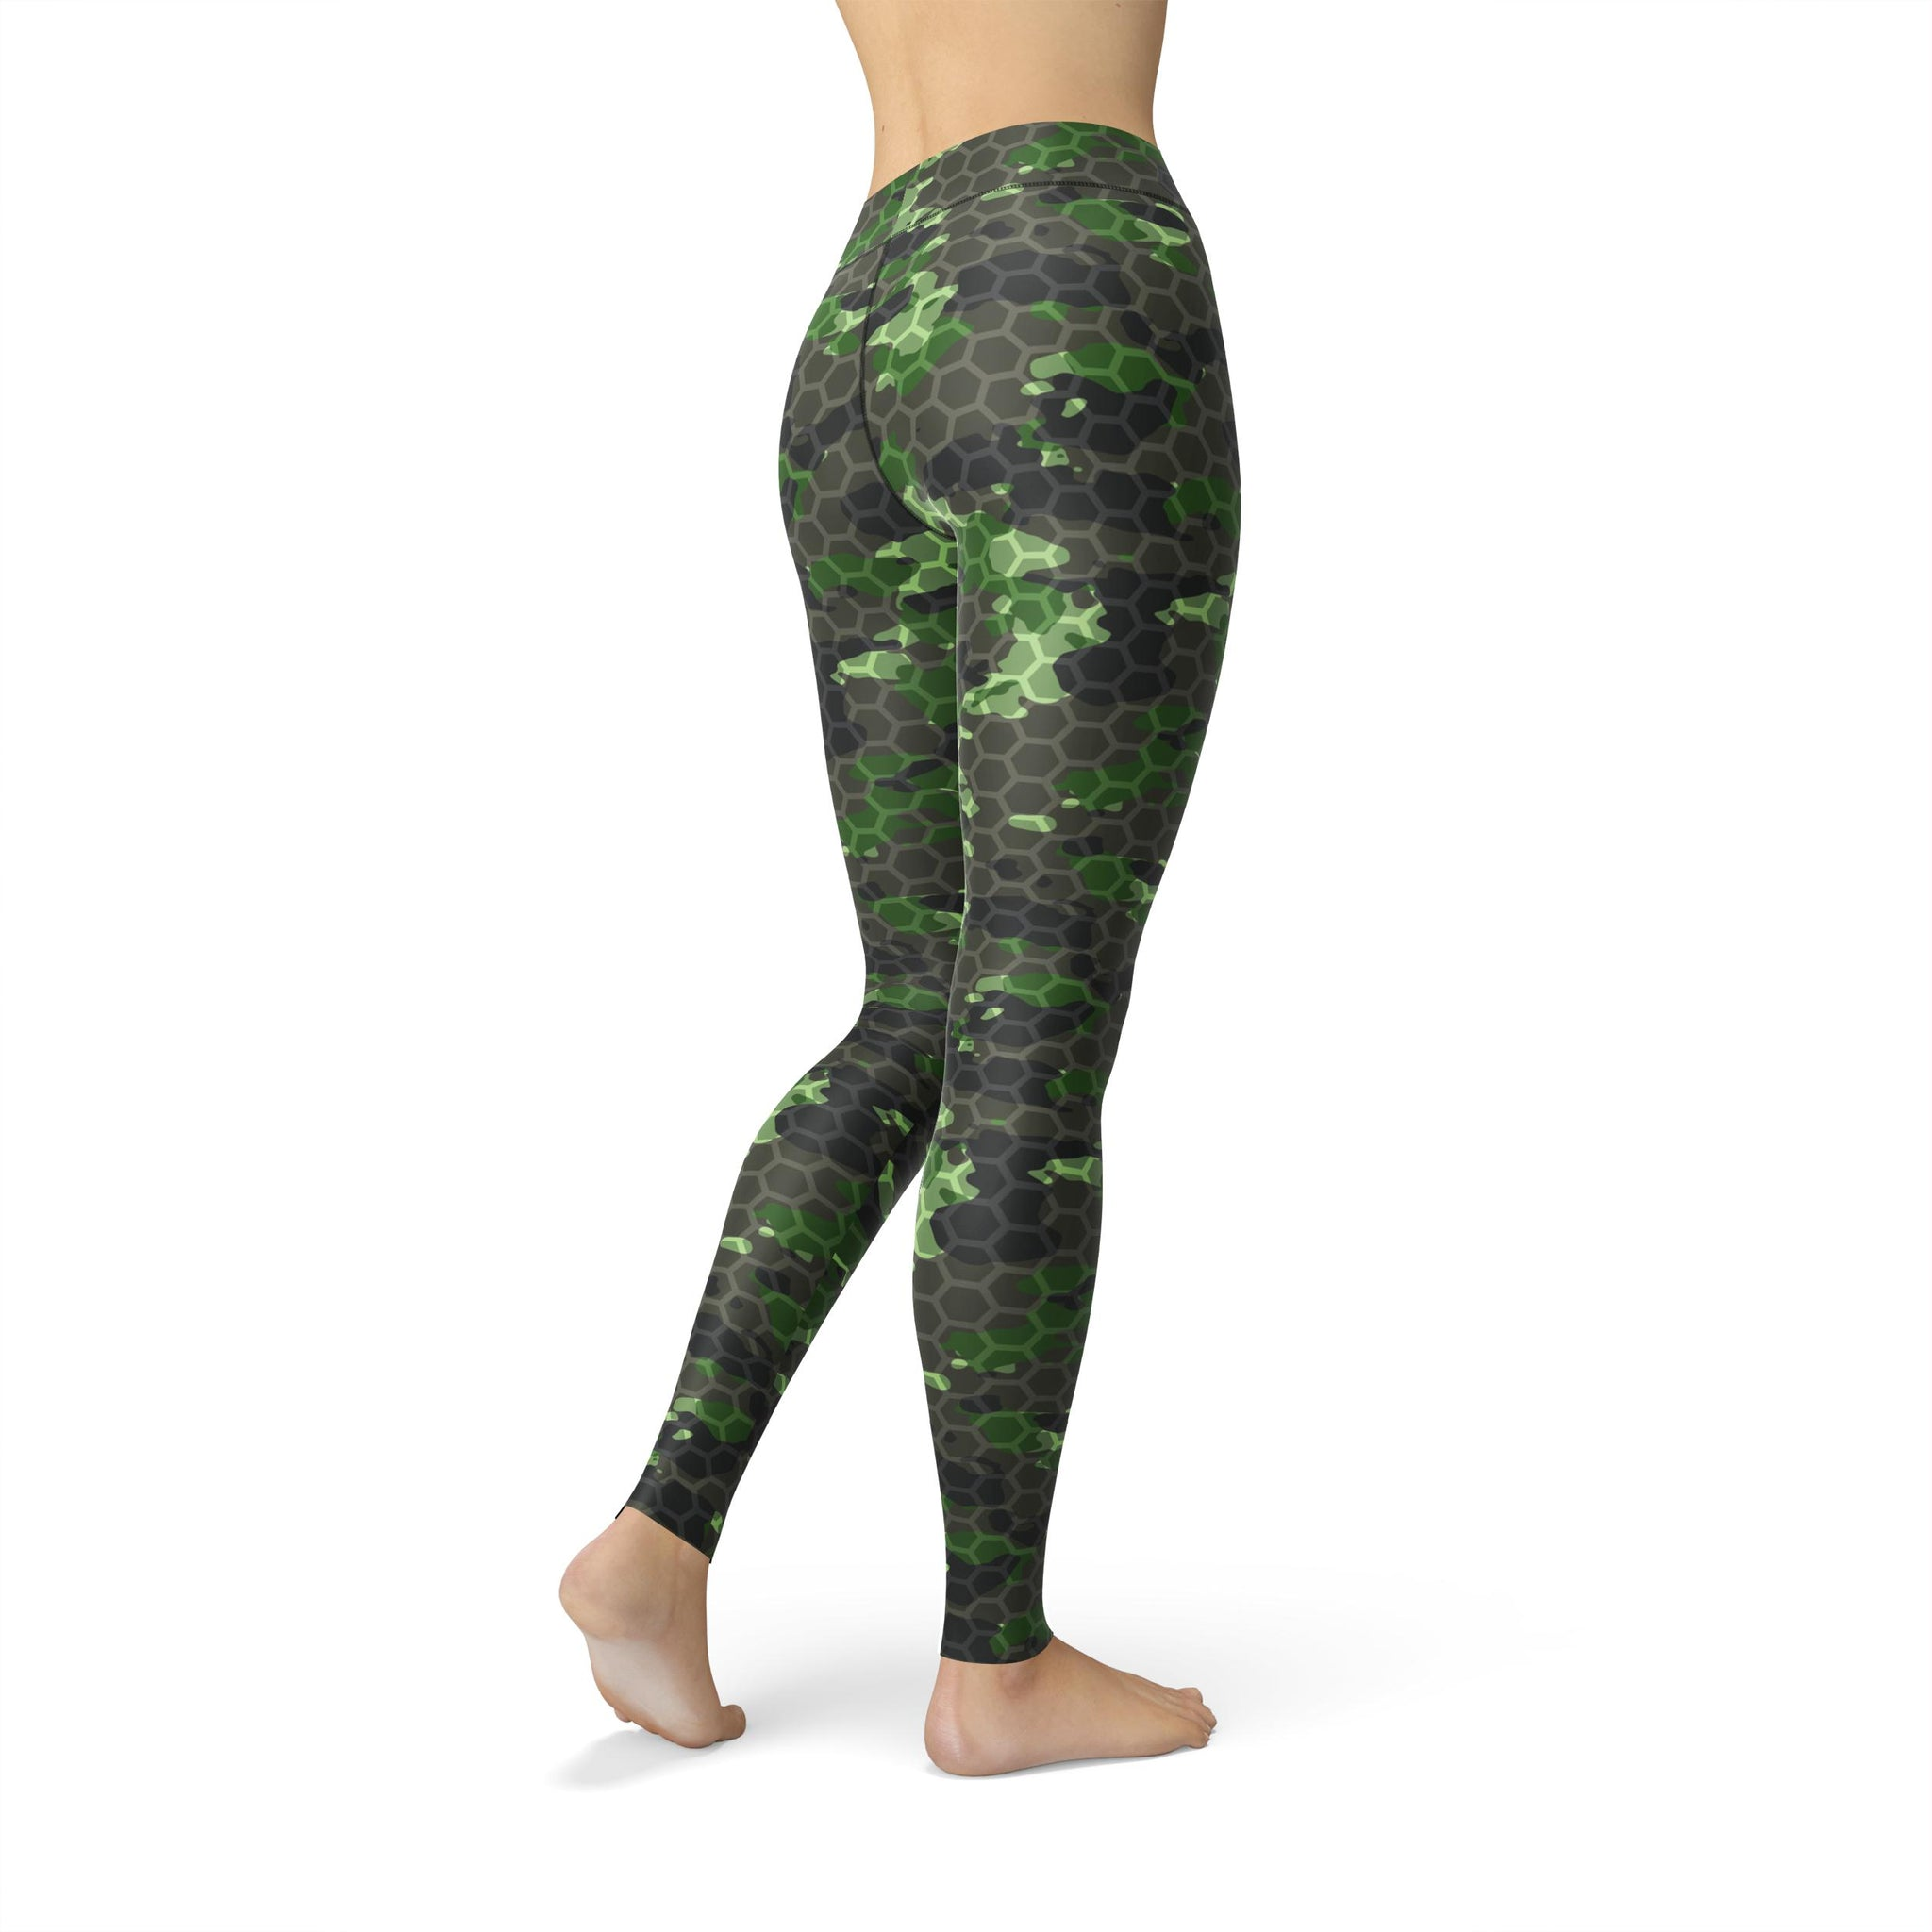 High-Waist Zen Infantry Rush Camouflage Legging